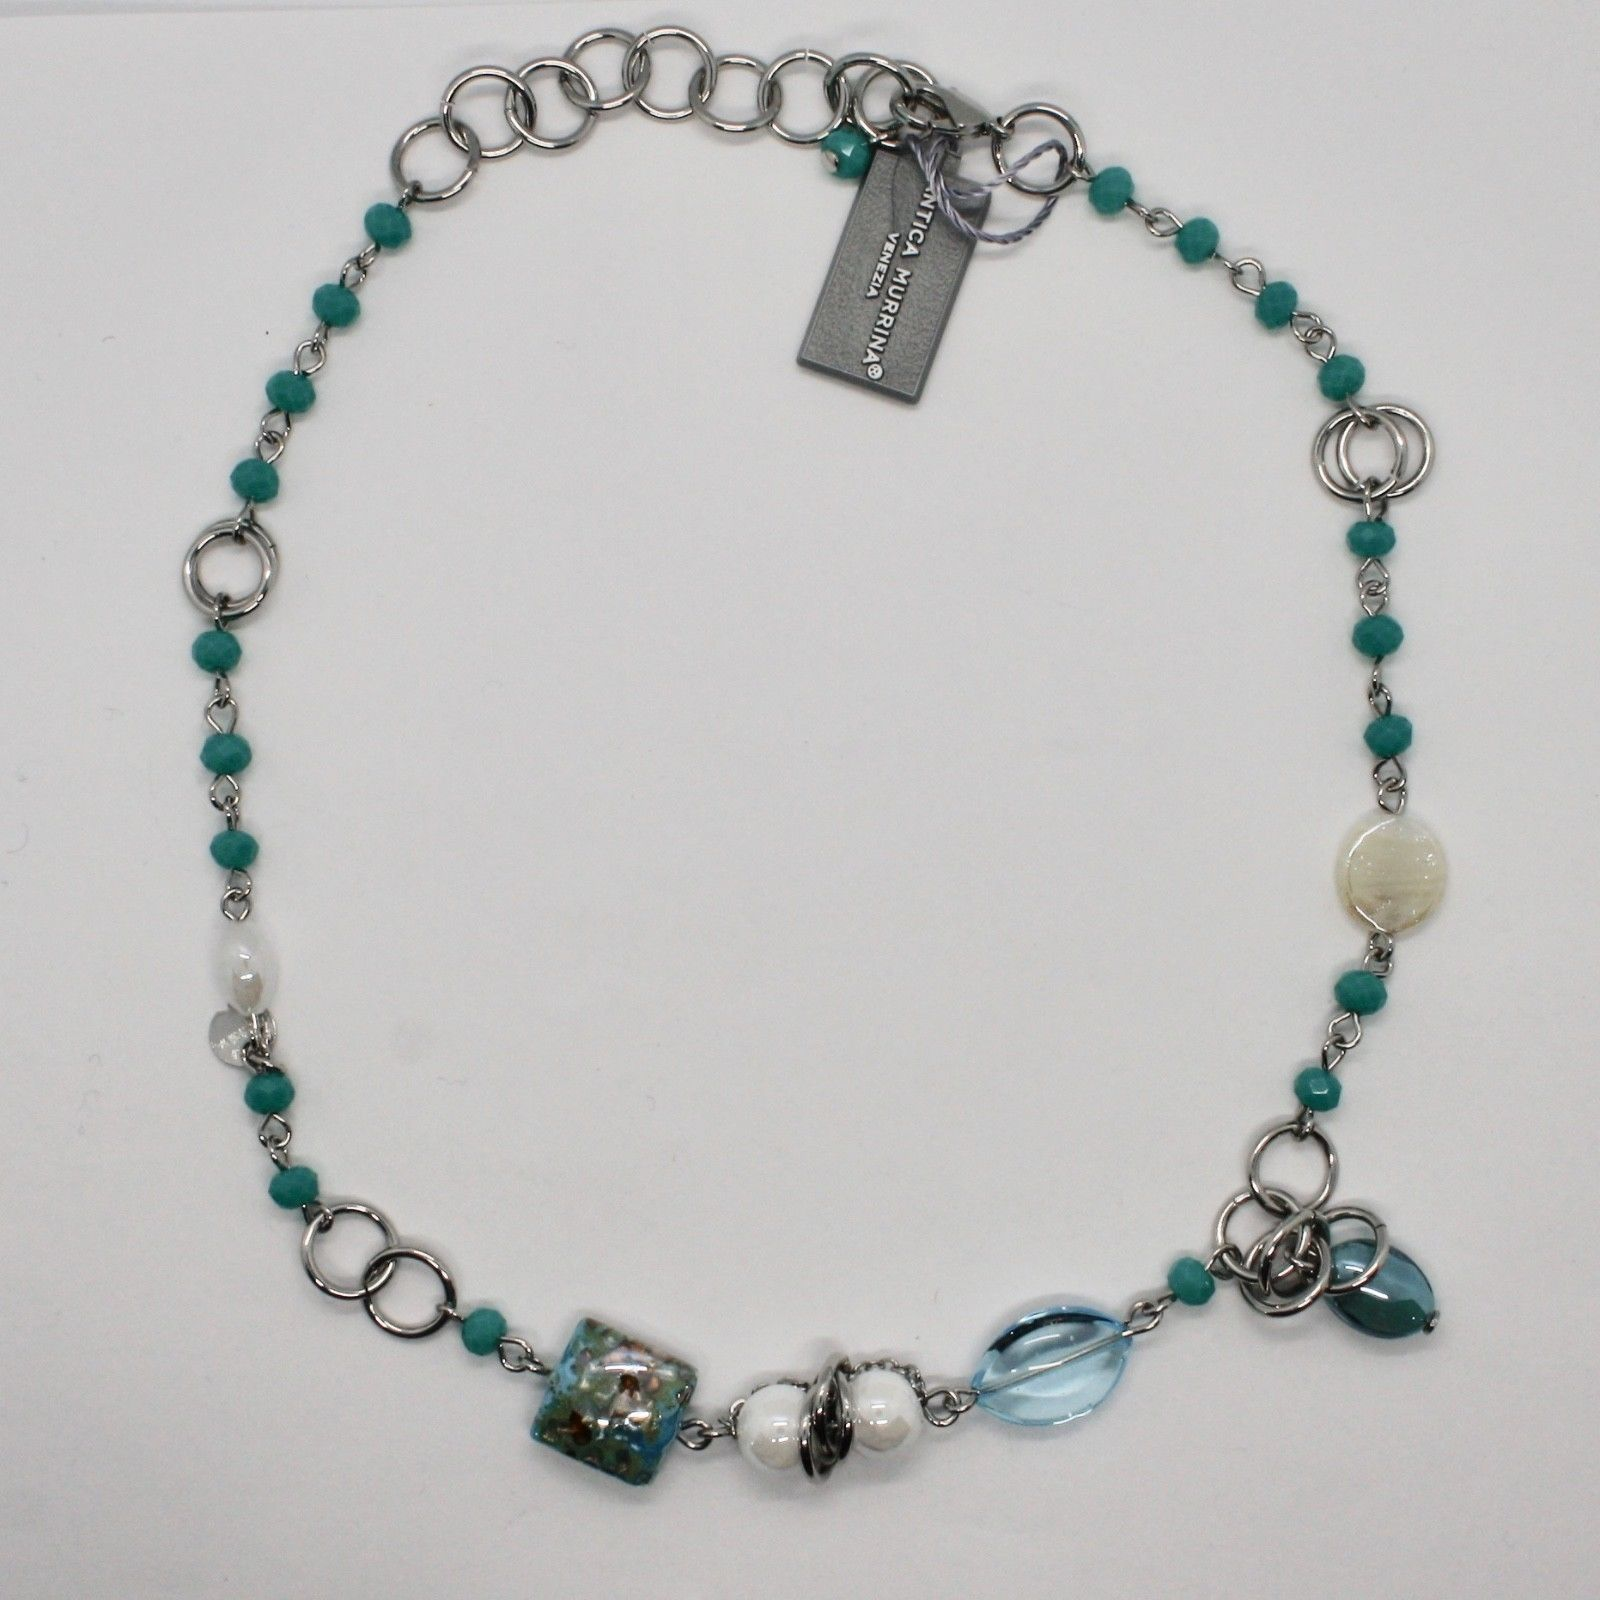 NECKLACE ANTICA MURRINA VENEZIA WITH MURANO GLASS TURQUOISE BLUE BEIGE COA81A07